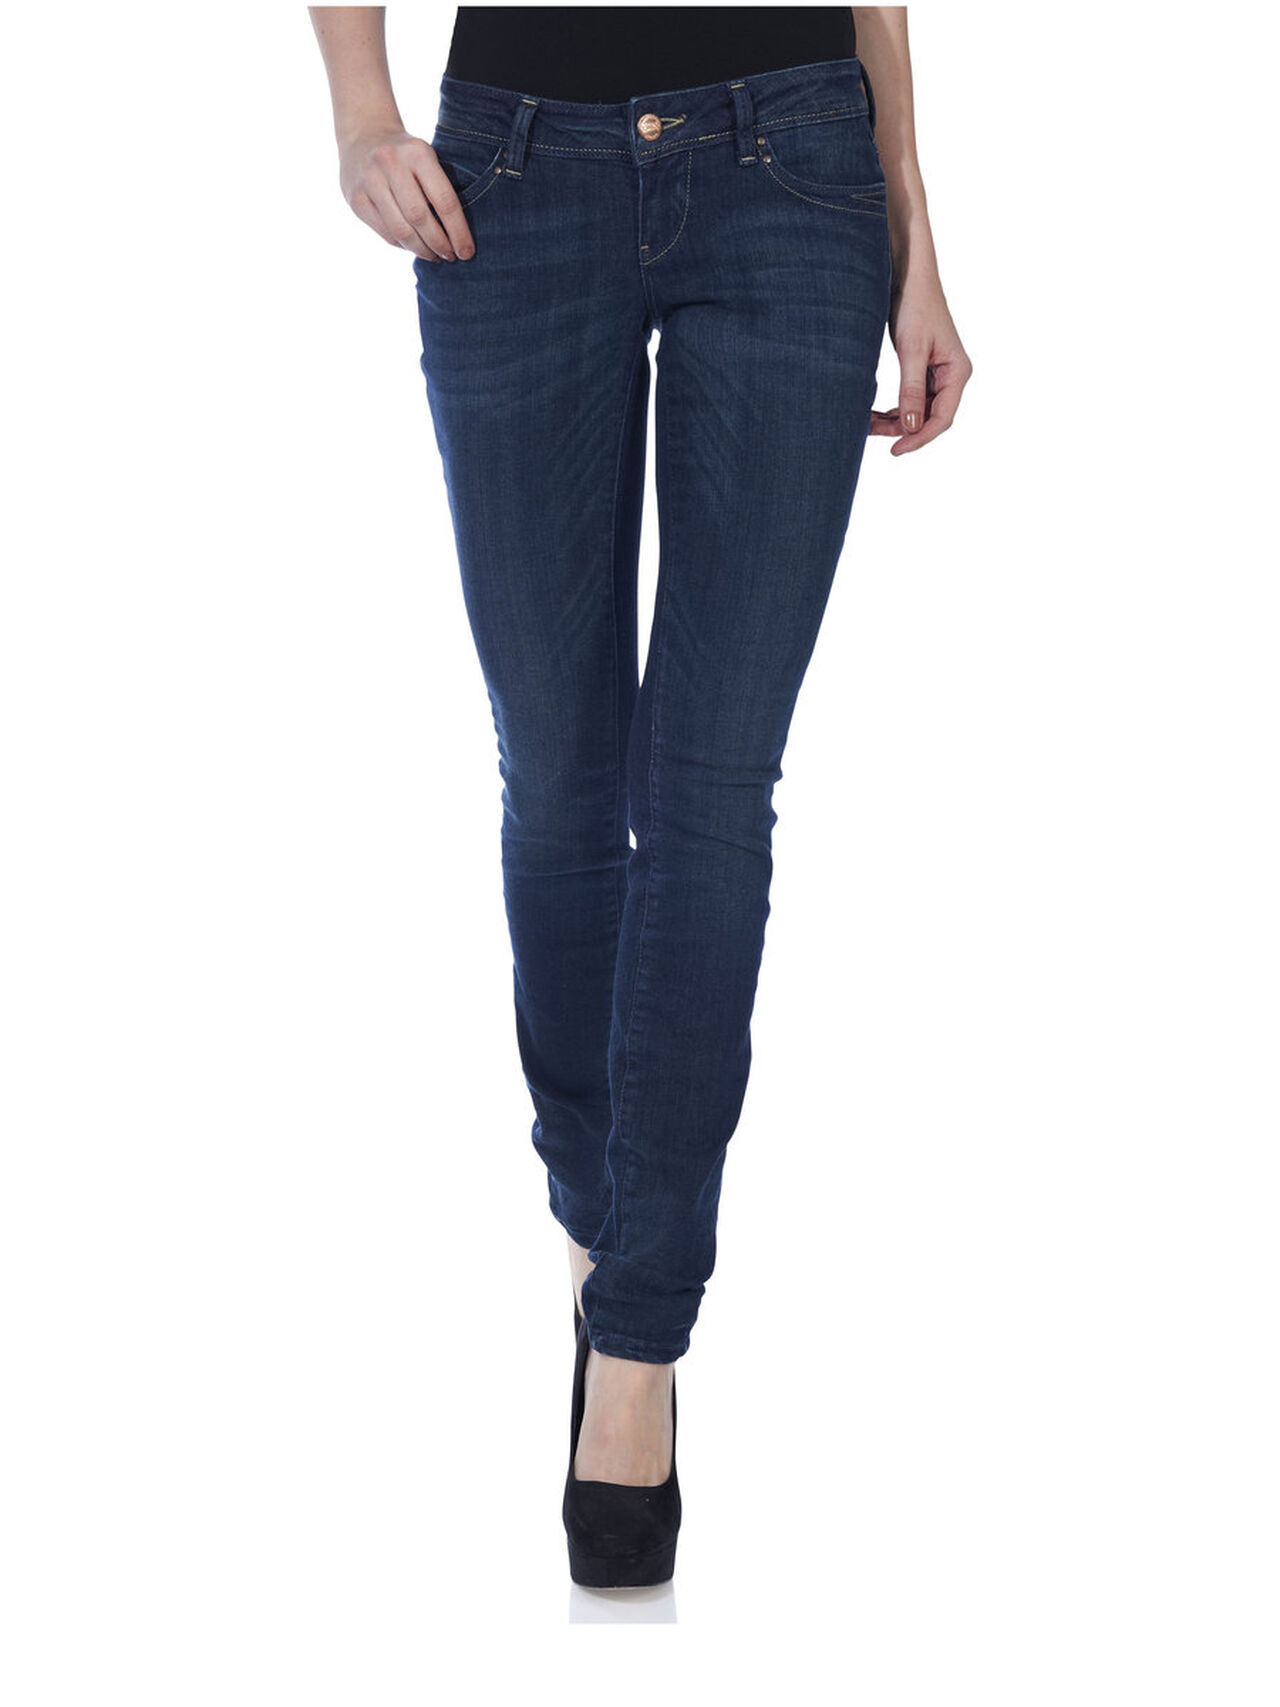 caa562f02a512 Skinny superlow coral jeans